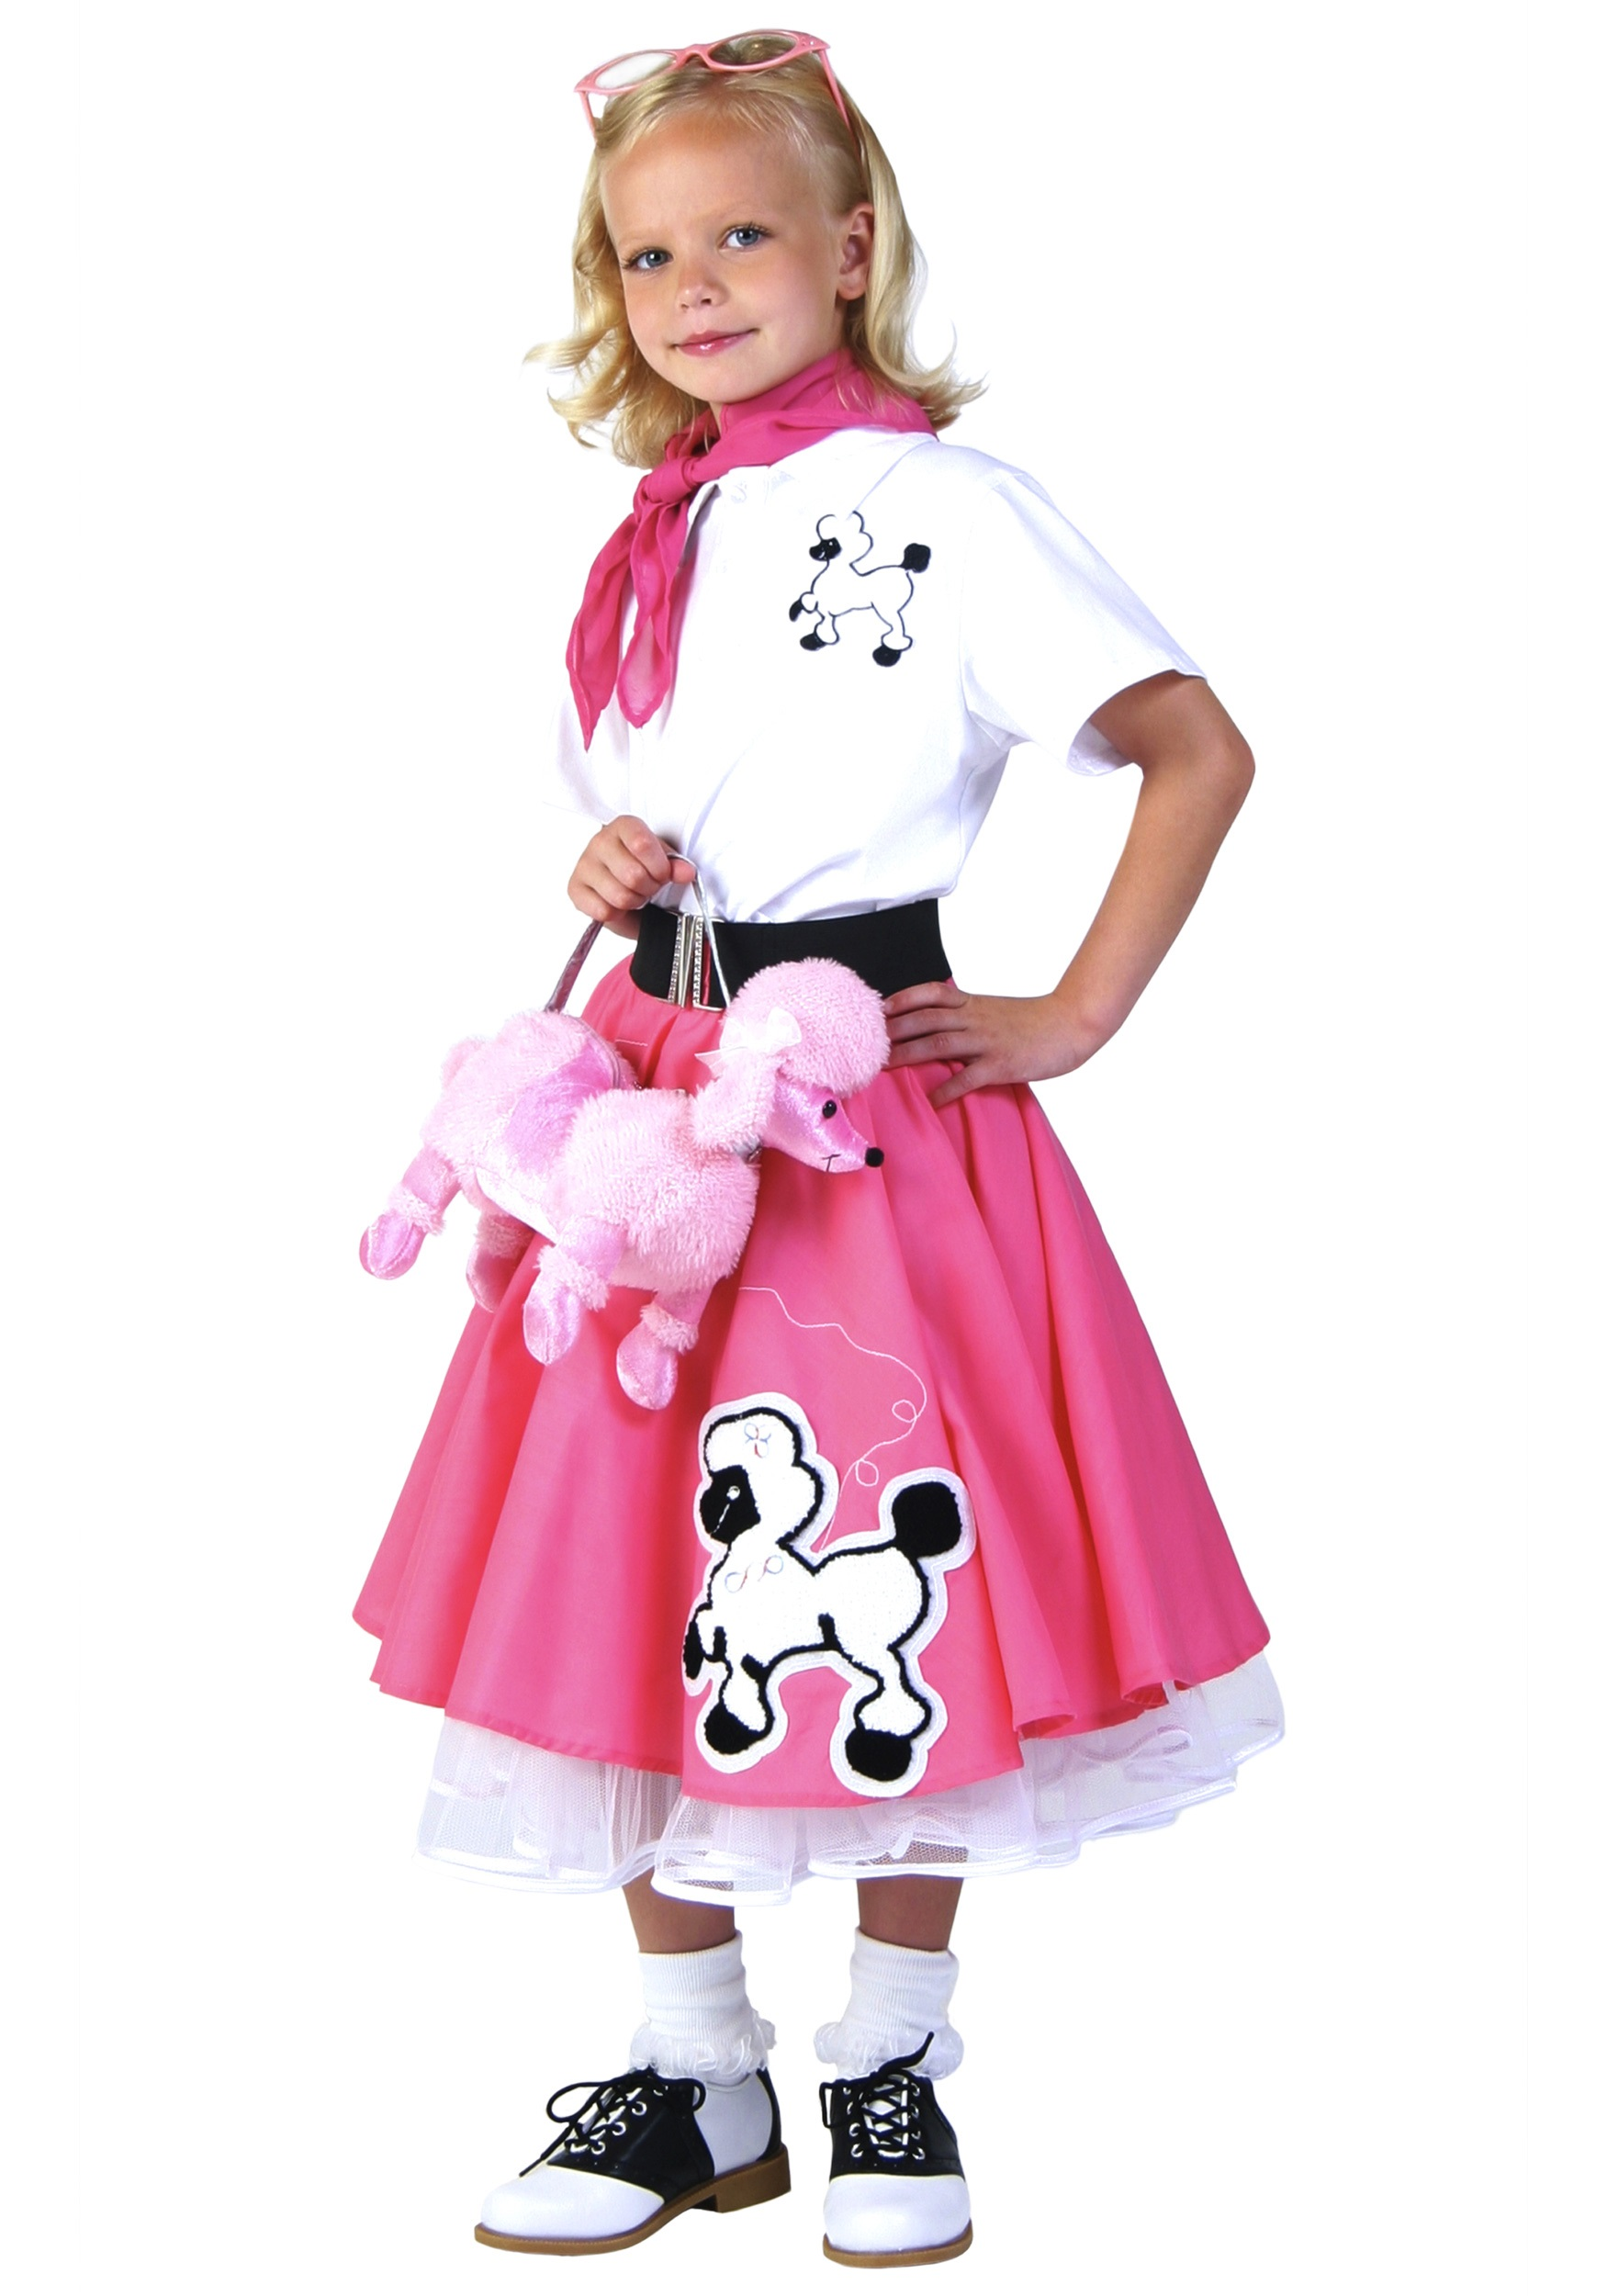 bd26545ead 50s Costume Girls & Kids Deluxe Pink Poodle Skirt Costume Sc 1 St ...